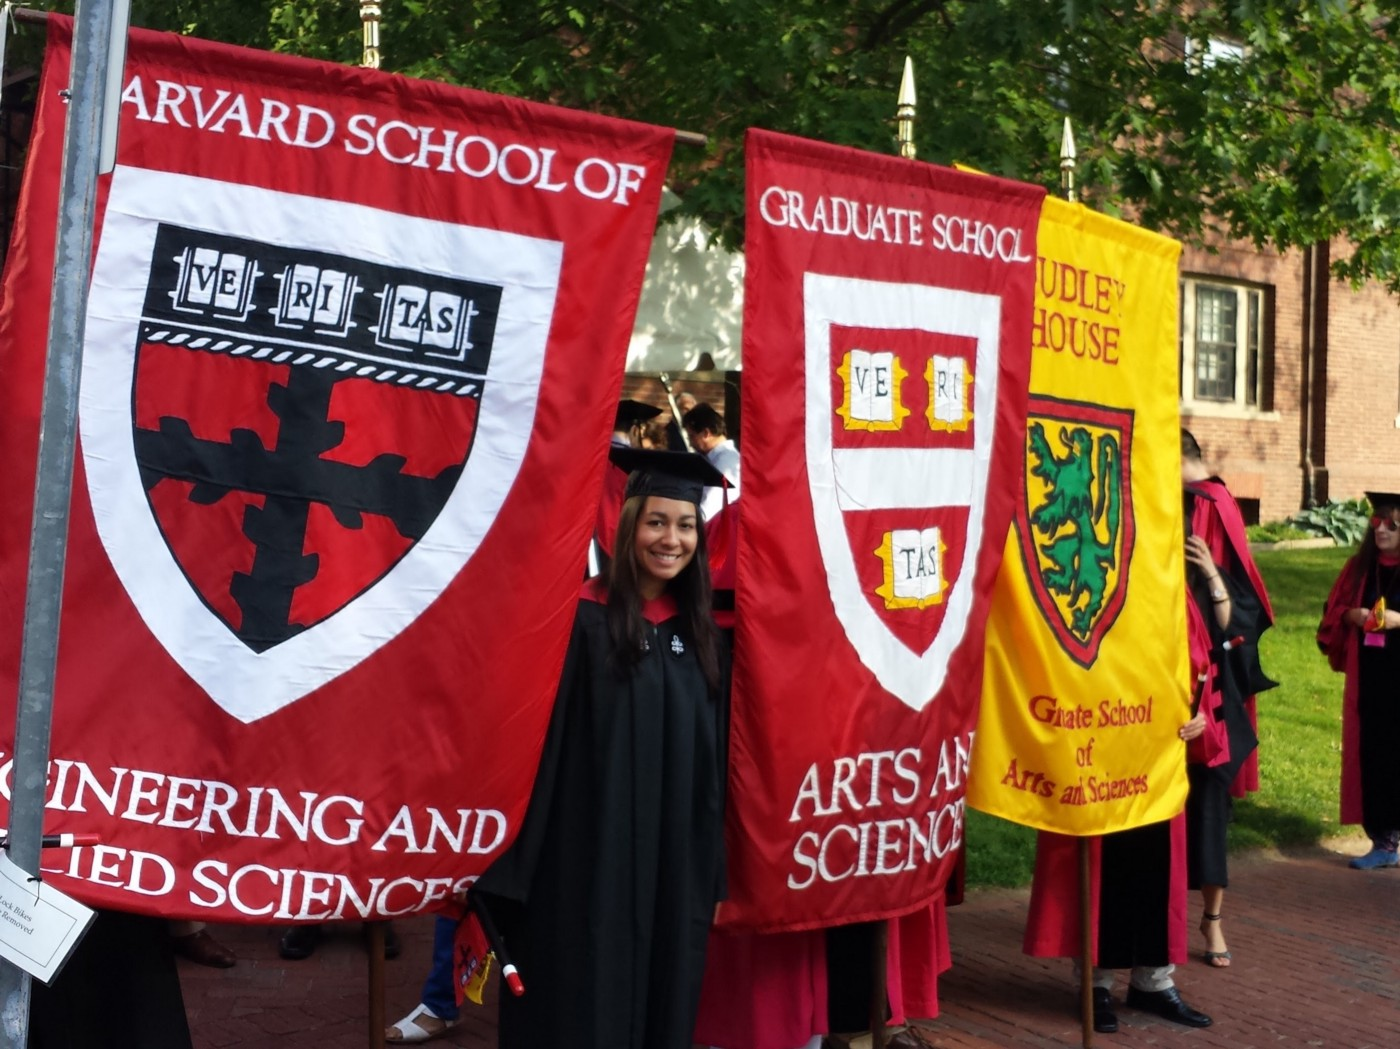 Author posing by Harvard school flags during commencement